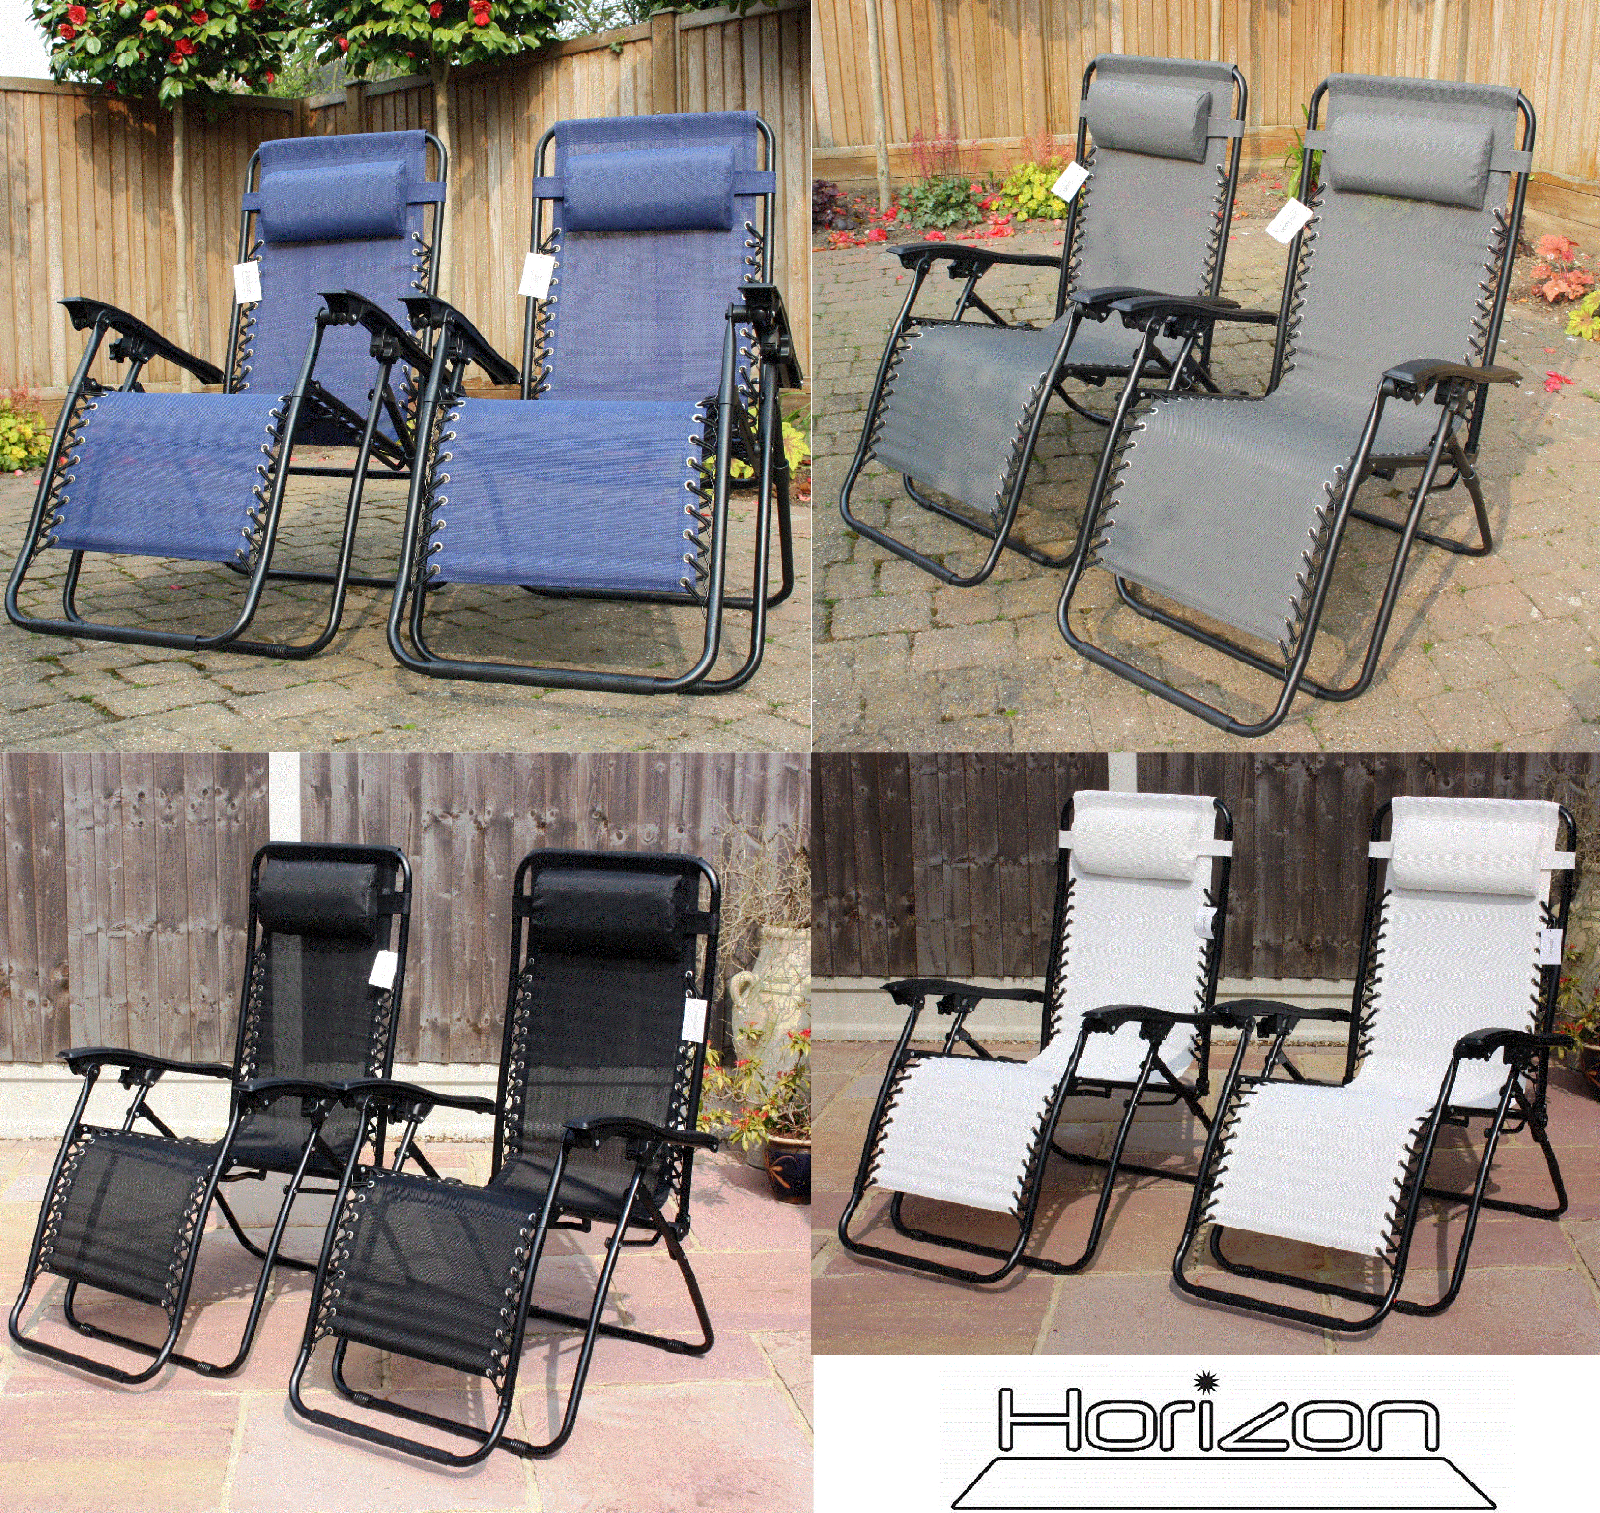 garden chairs - SET OF 2 RECLINING SUN LOUNGERS GRAVITY FOLDING GARDEN CHAIRS OR SPARE PARTS